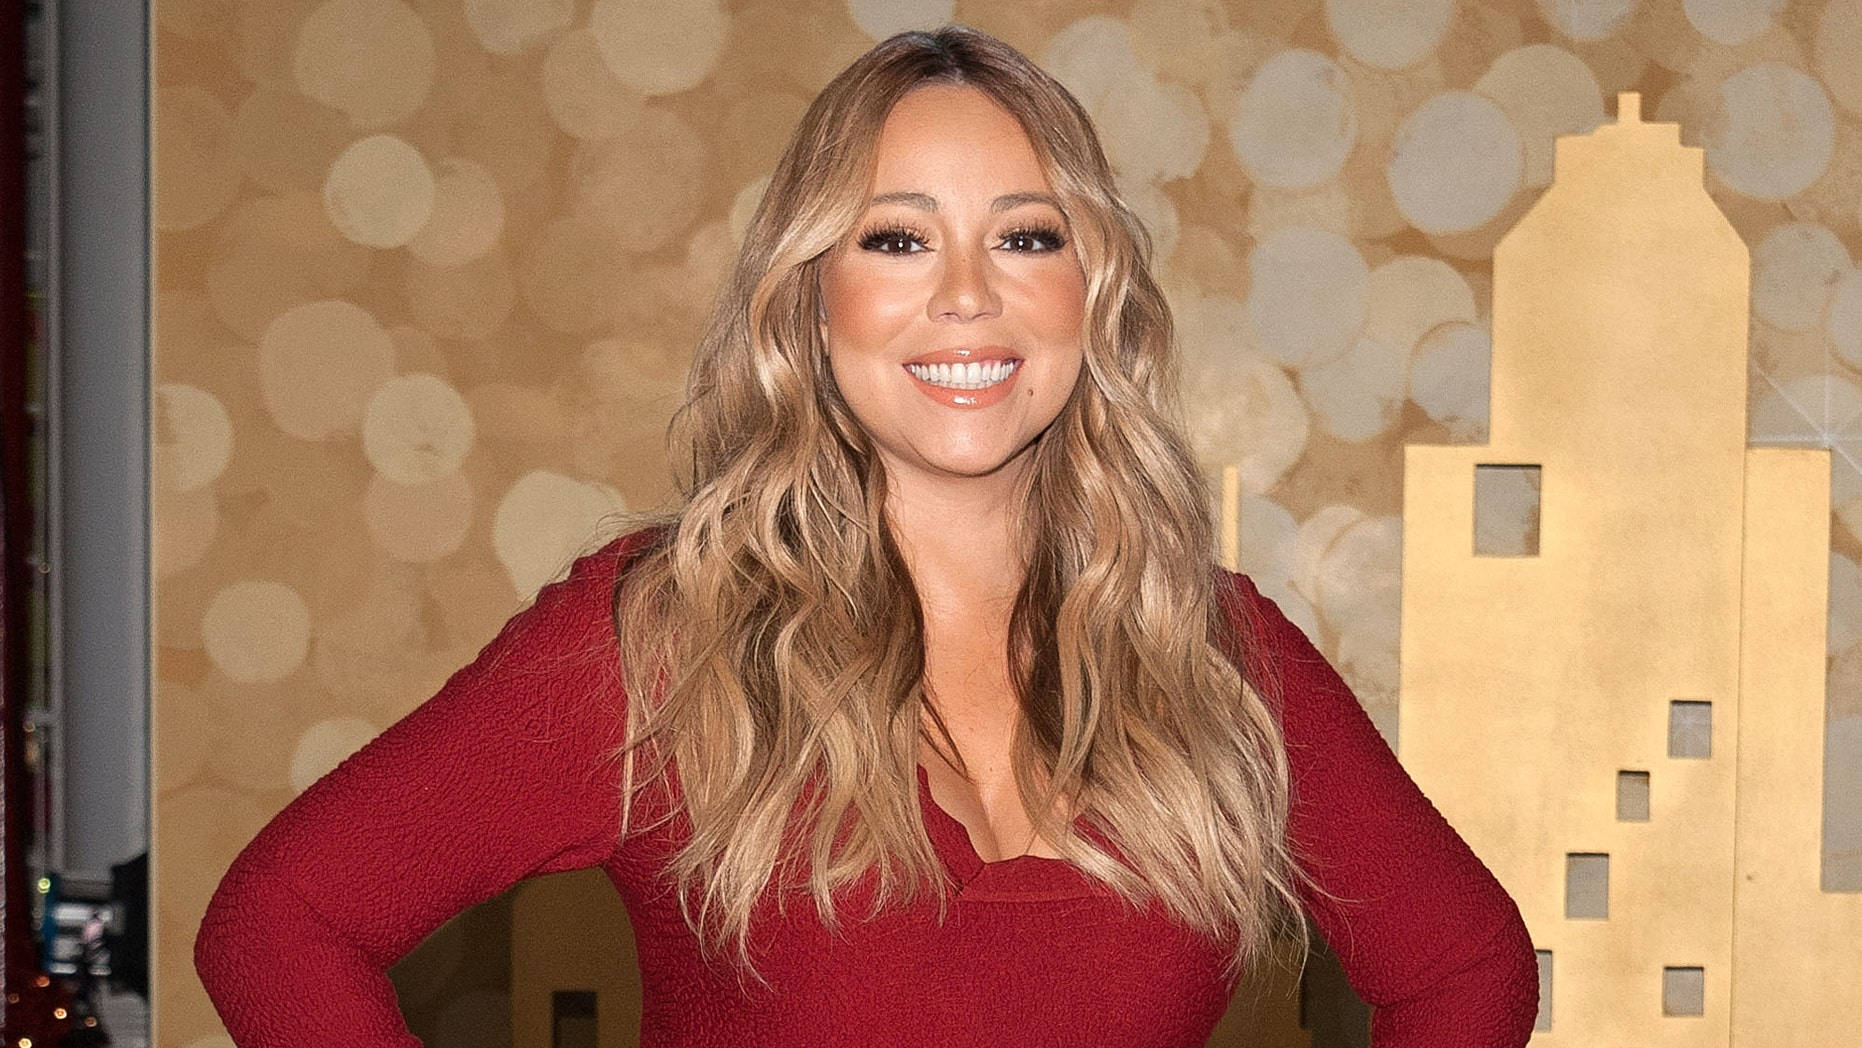 Mariah Carey attends the Pier 1 Imports Pop-up Store launch event on December 1, 2015 in New York City.